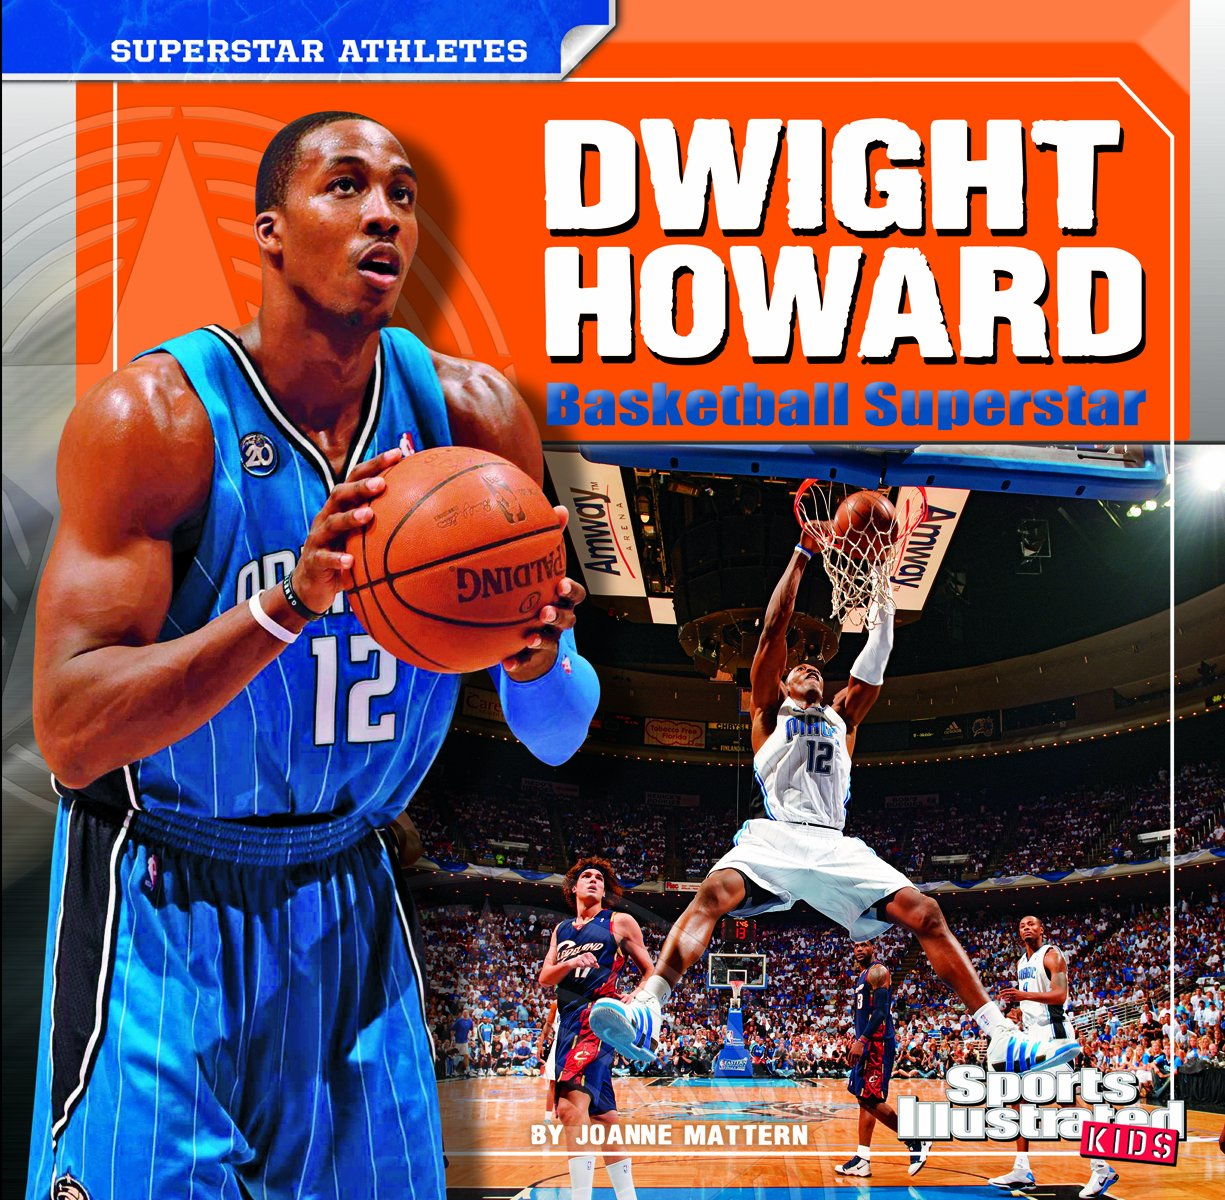 Dwight Howard: Basketball Superstar (Superstar Athletes) by Brand: Capstone Press (Image #1)